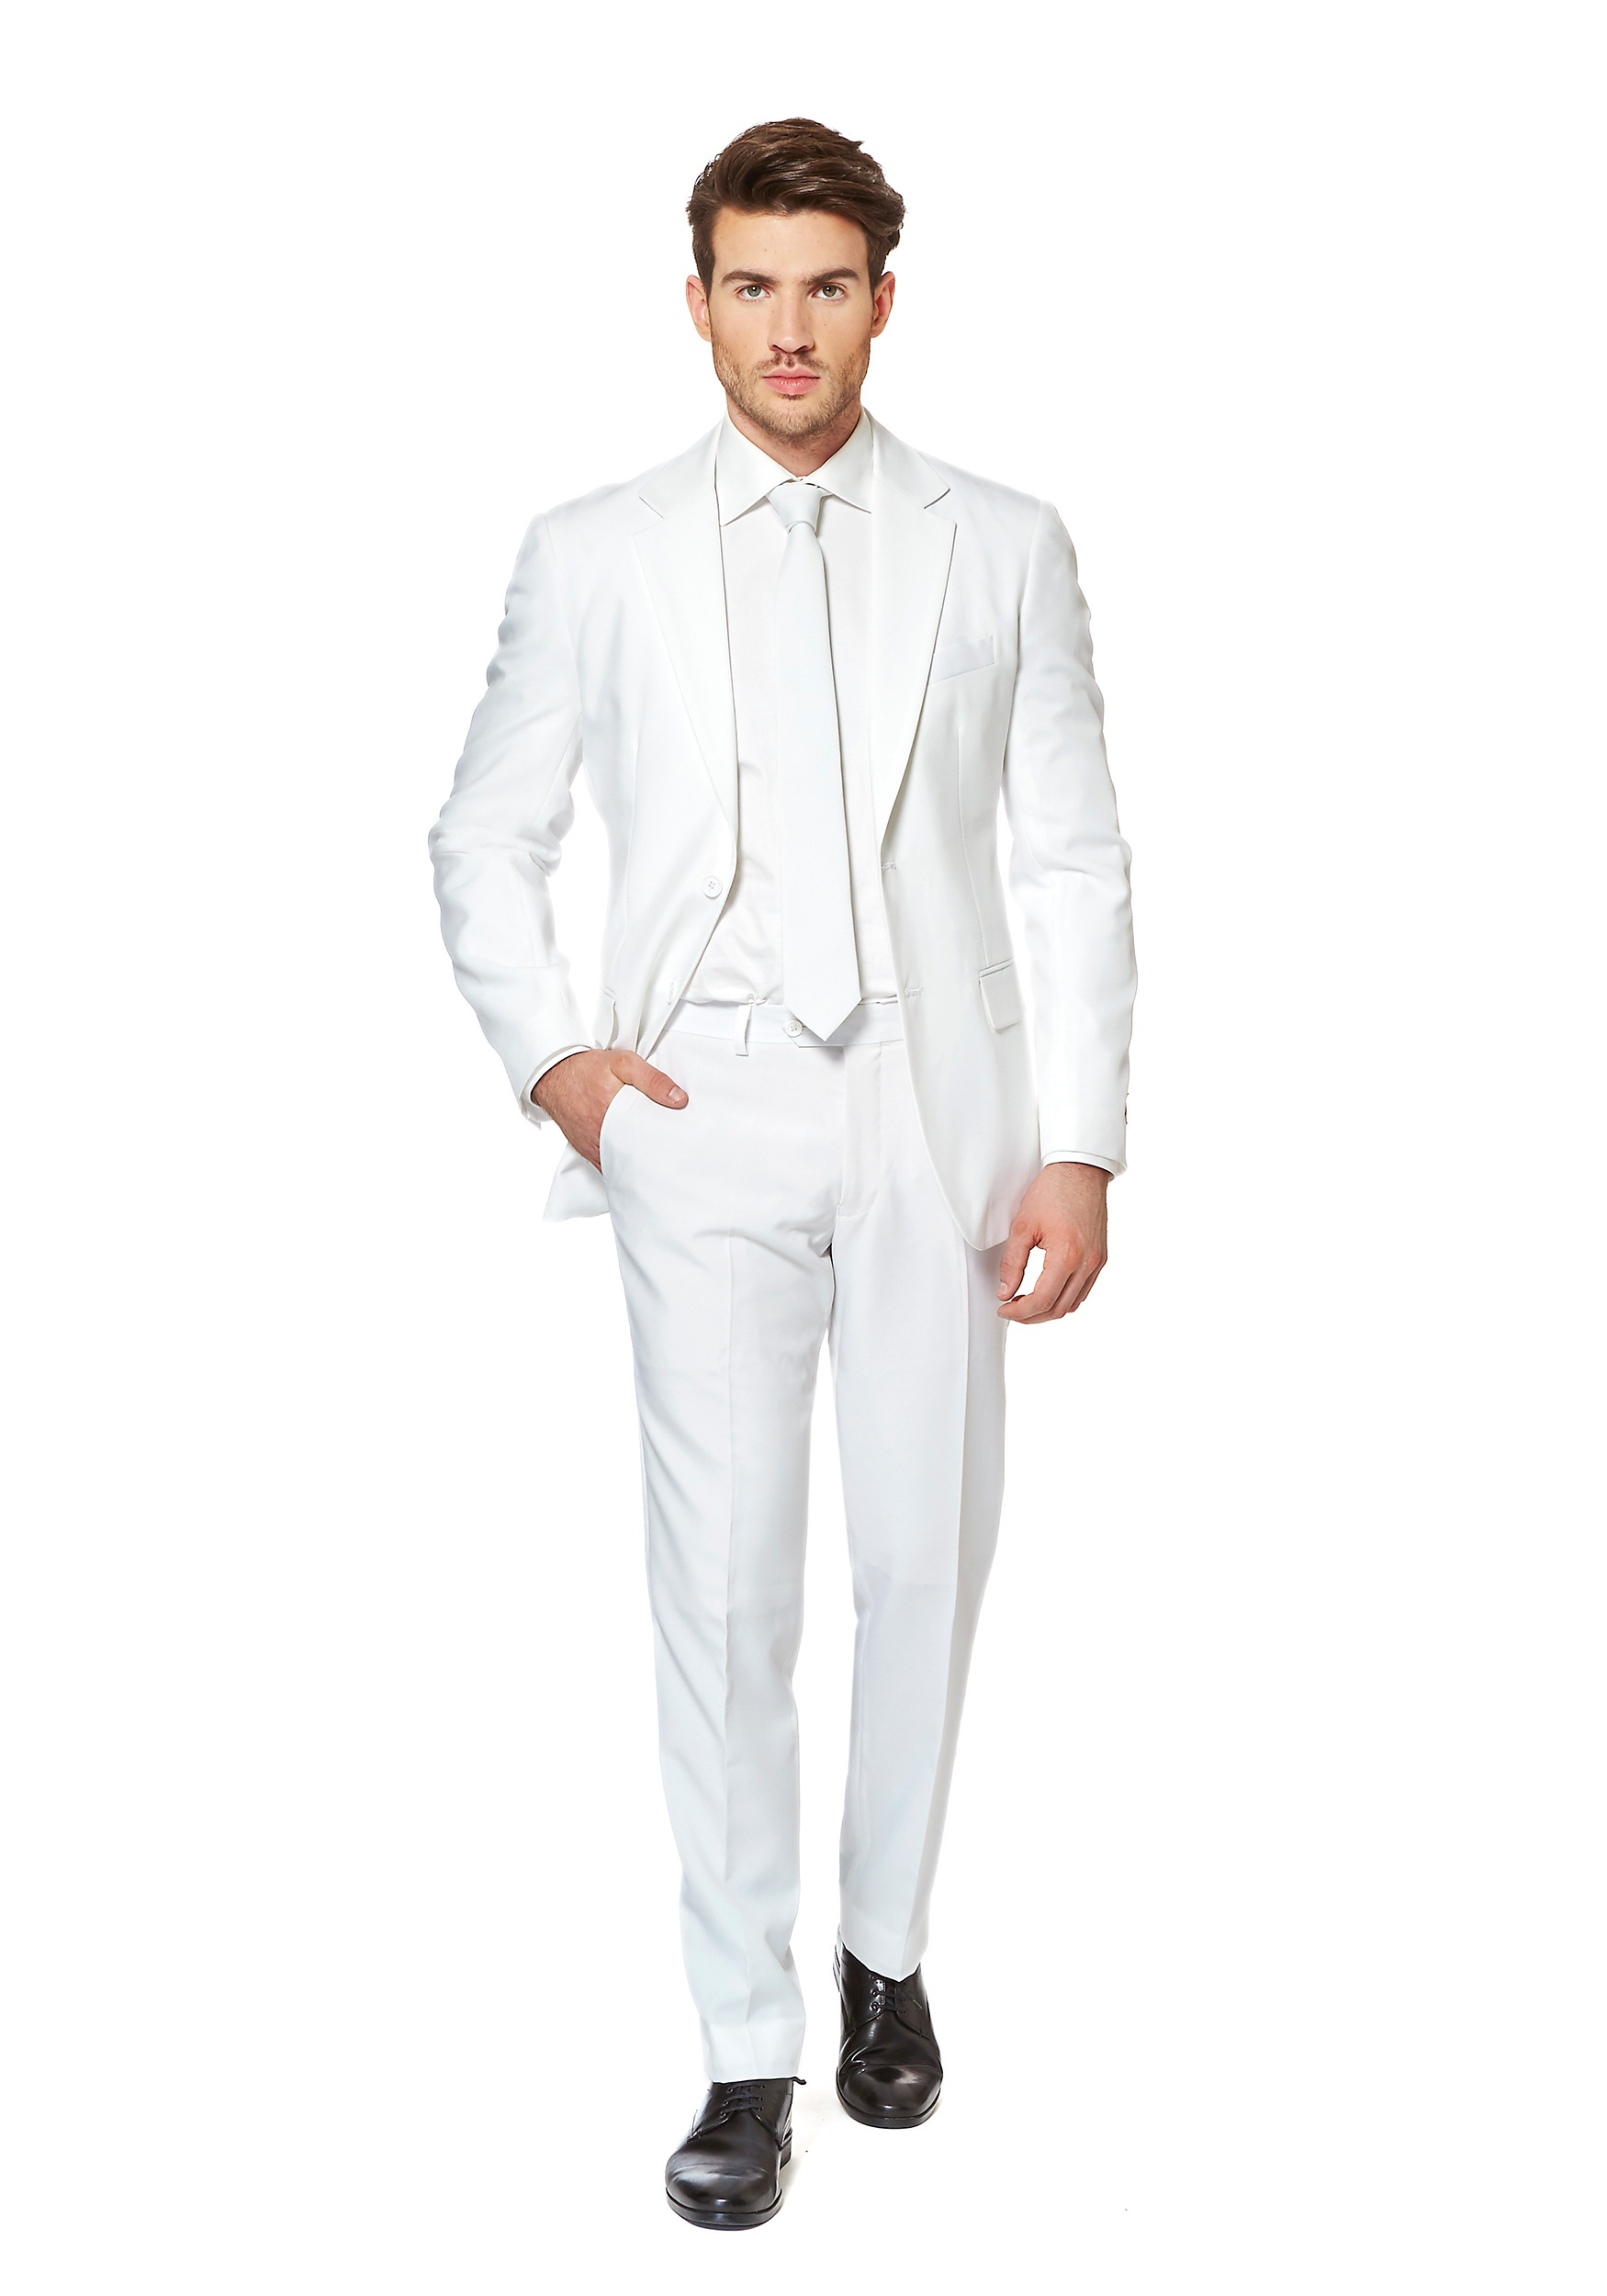 We have white suits with special clergy ties and pocket squares and even bow ties. We have paired up some of our navy suits with tie colors like white, red and burgundy. We carry regular cut suits as well as husky and slim so please check size charts on the suit you are interested it to make sure of the best fit.